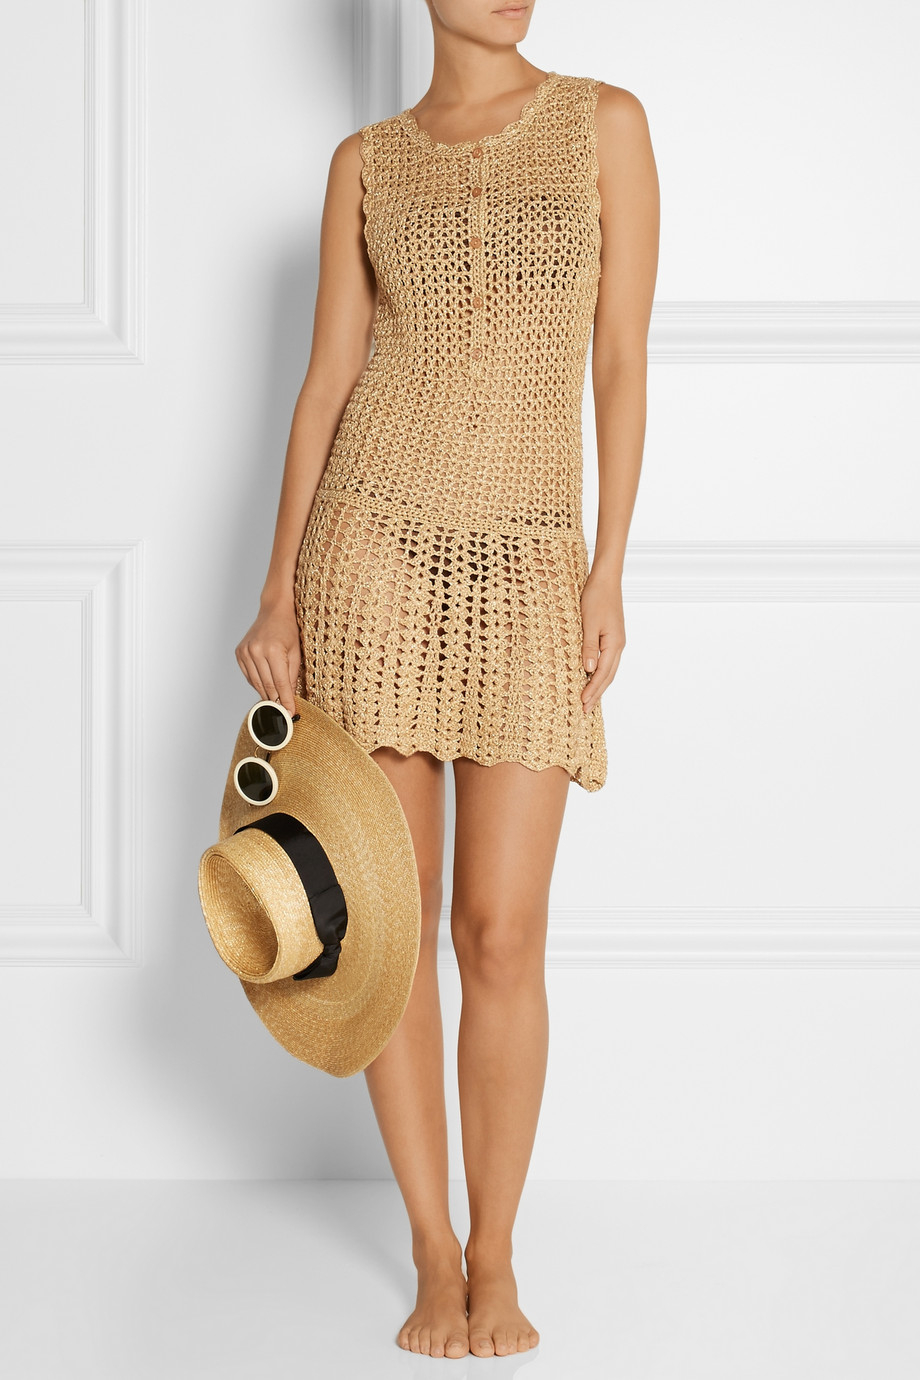 942f83a6d6 Melissa Odabash Rosie Metallic Crochet-Knit Dress in Metallic - Lyst